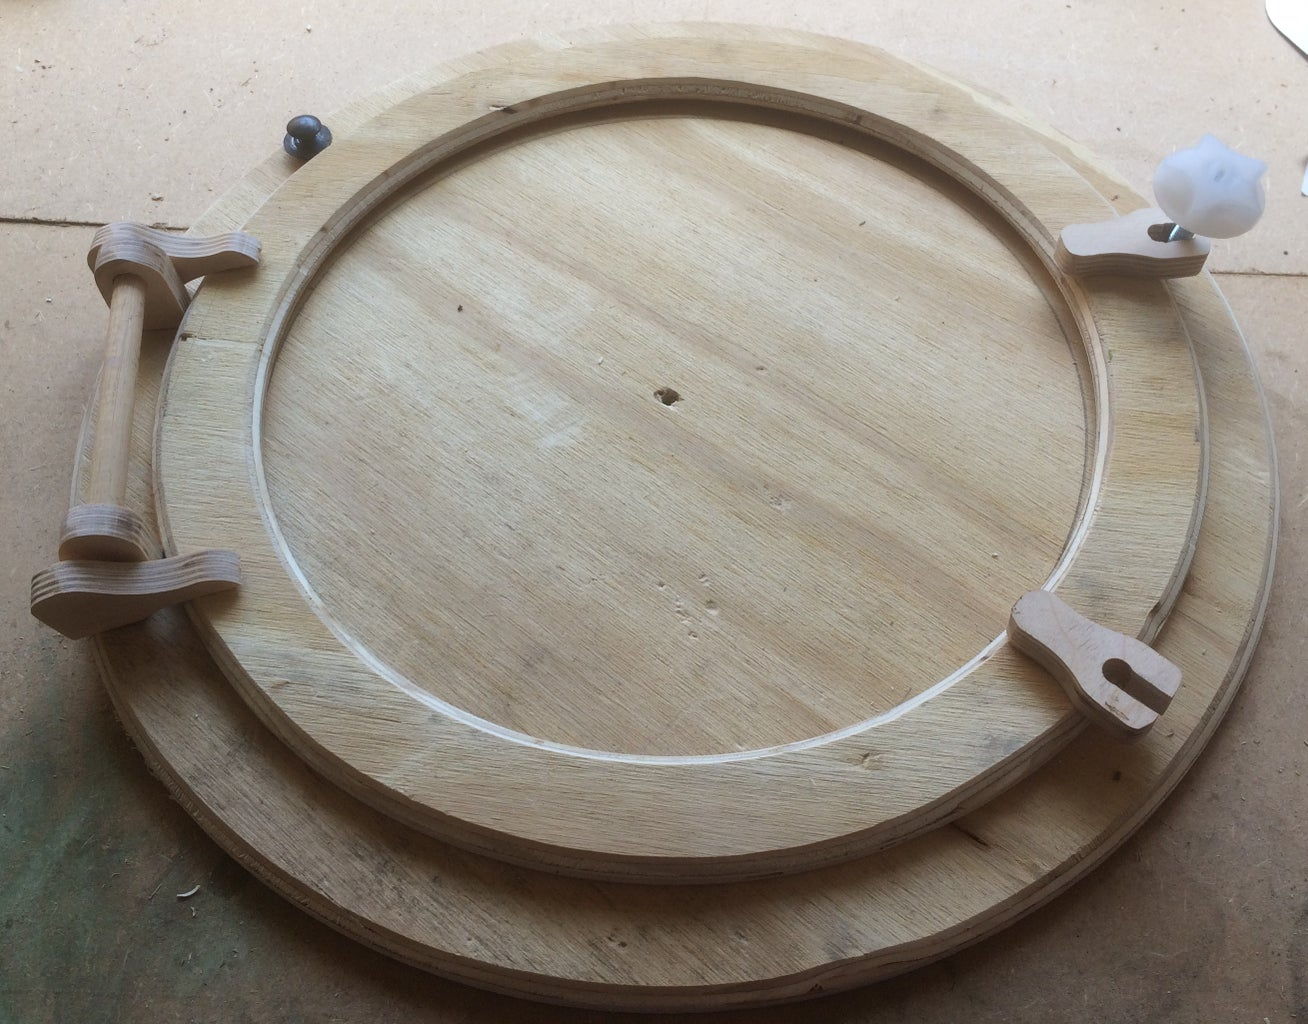 Plywood Pieces and Positioning